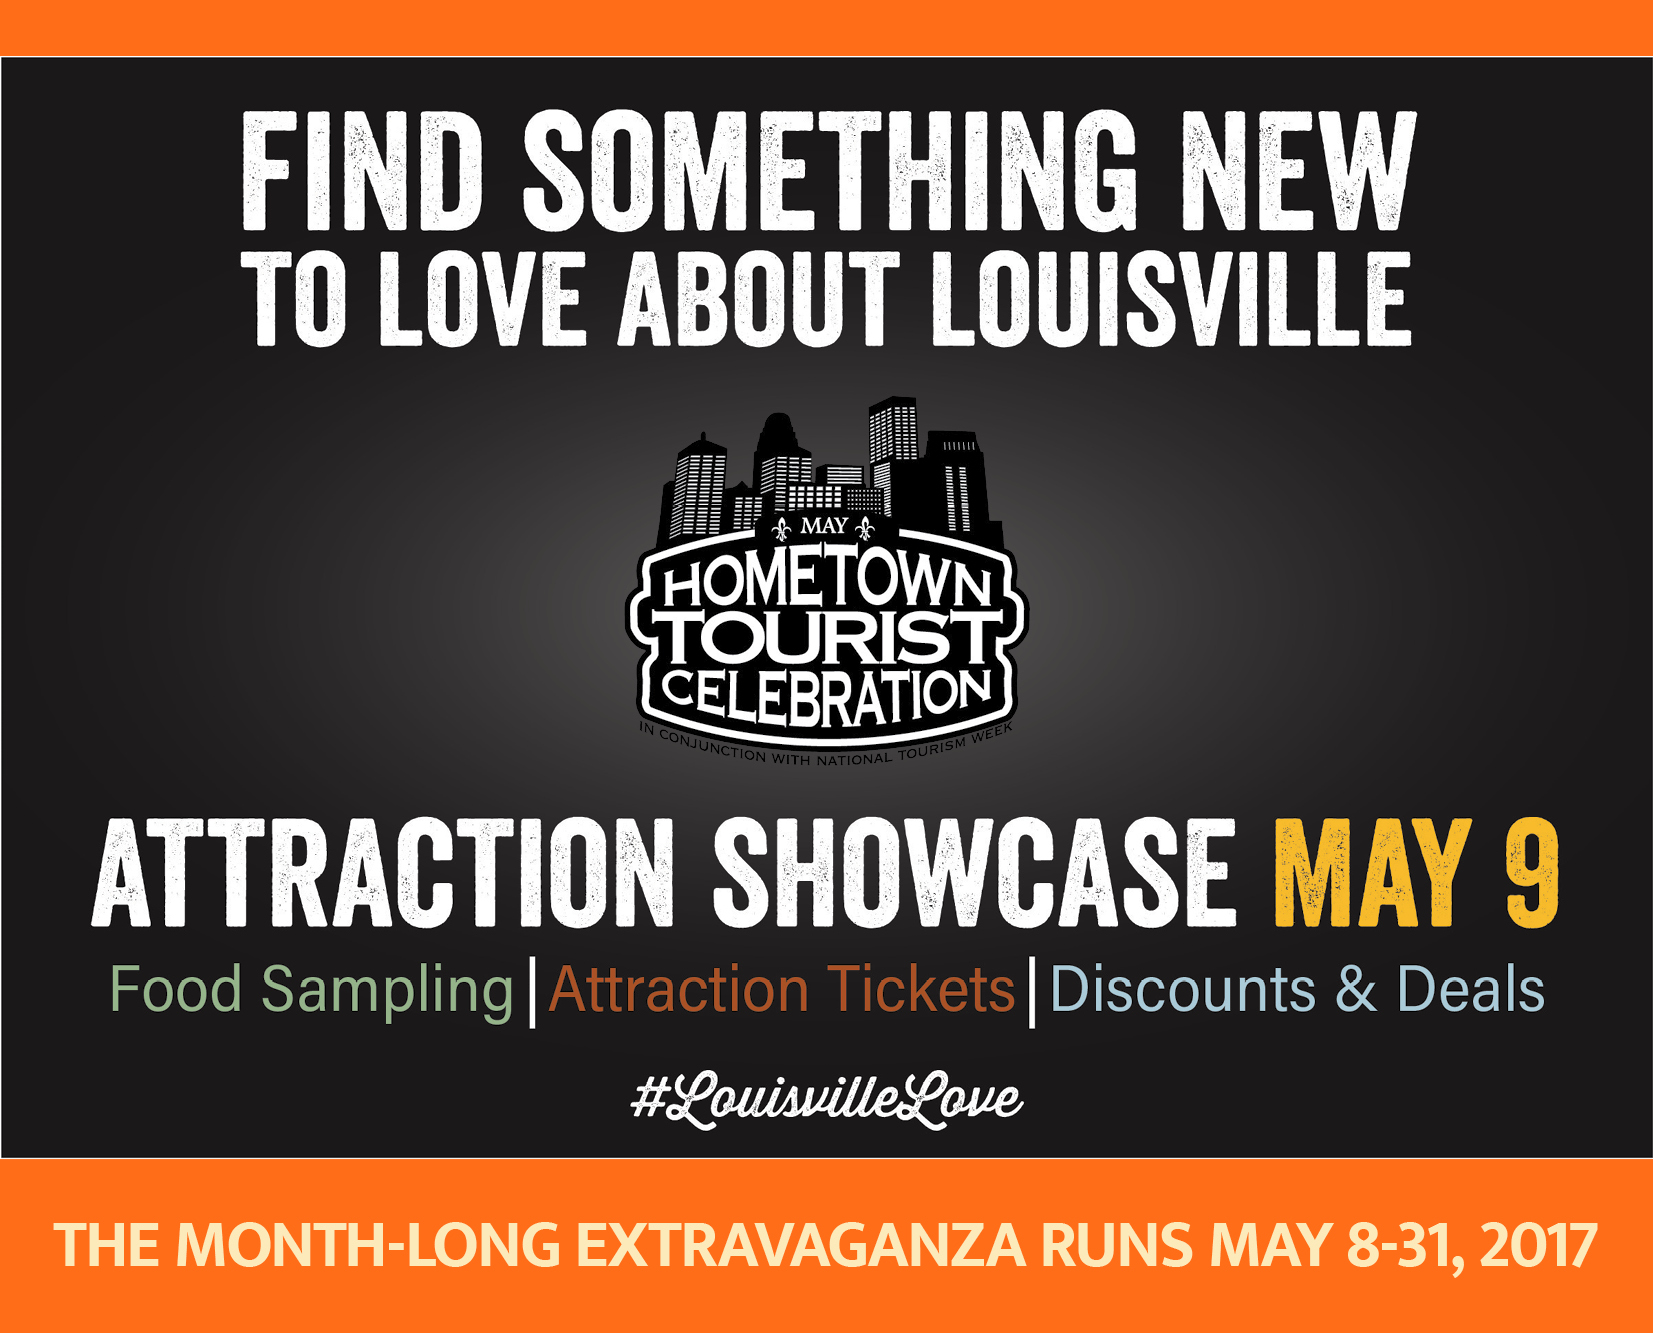 May 9 - Hometown Tourist Celebration & Attraction Showcase image